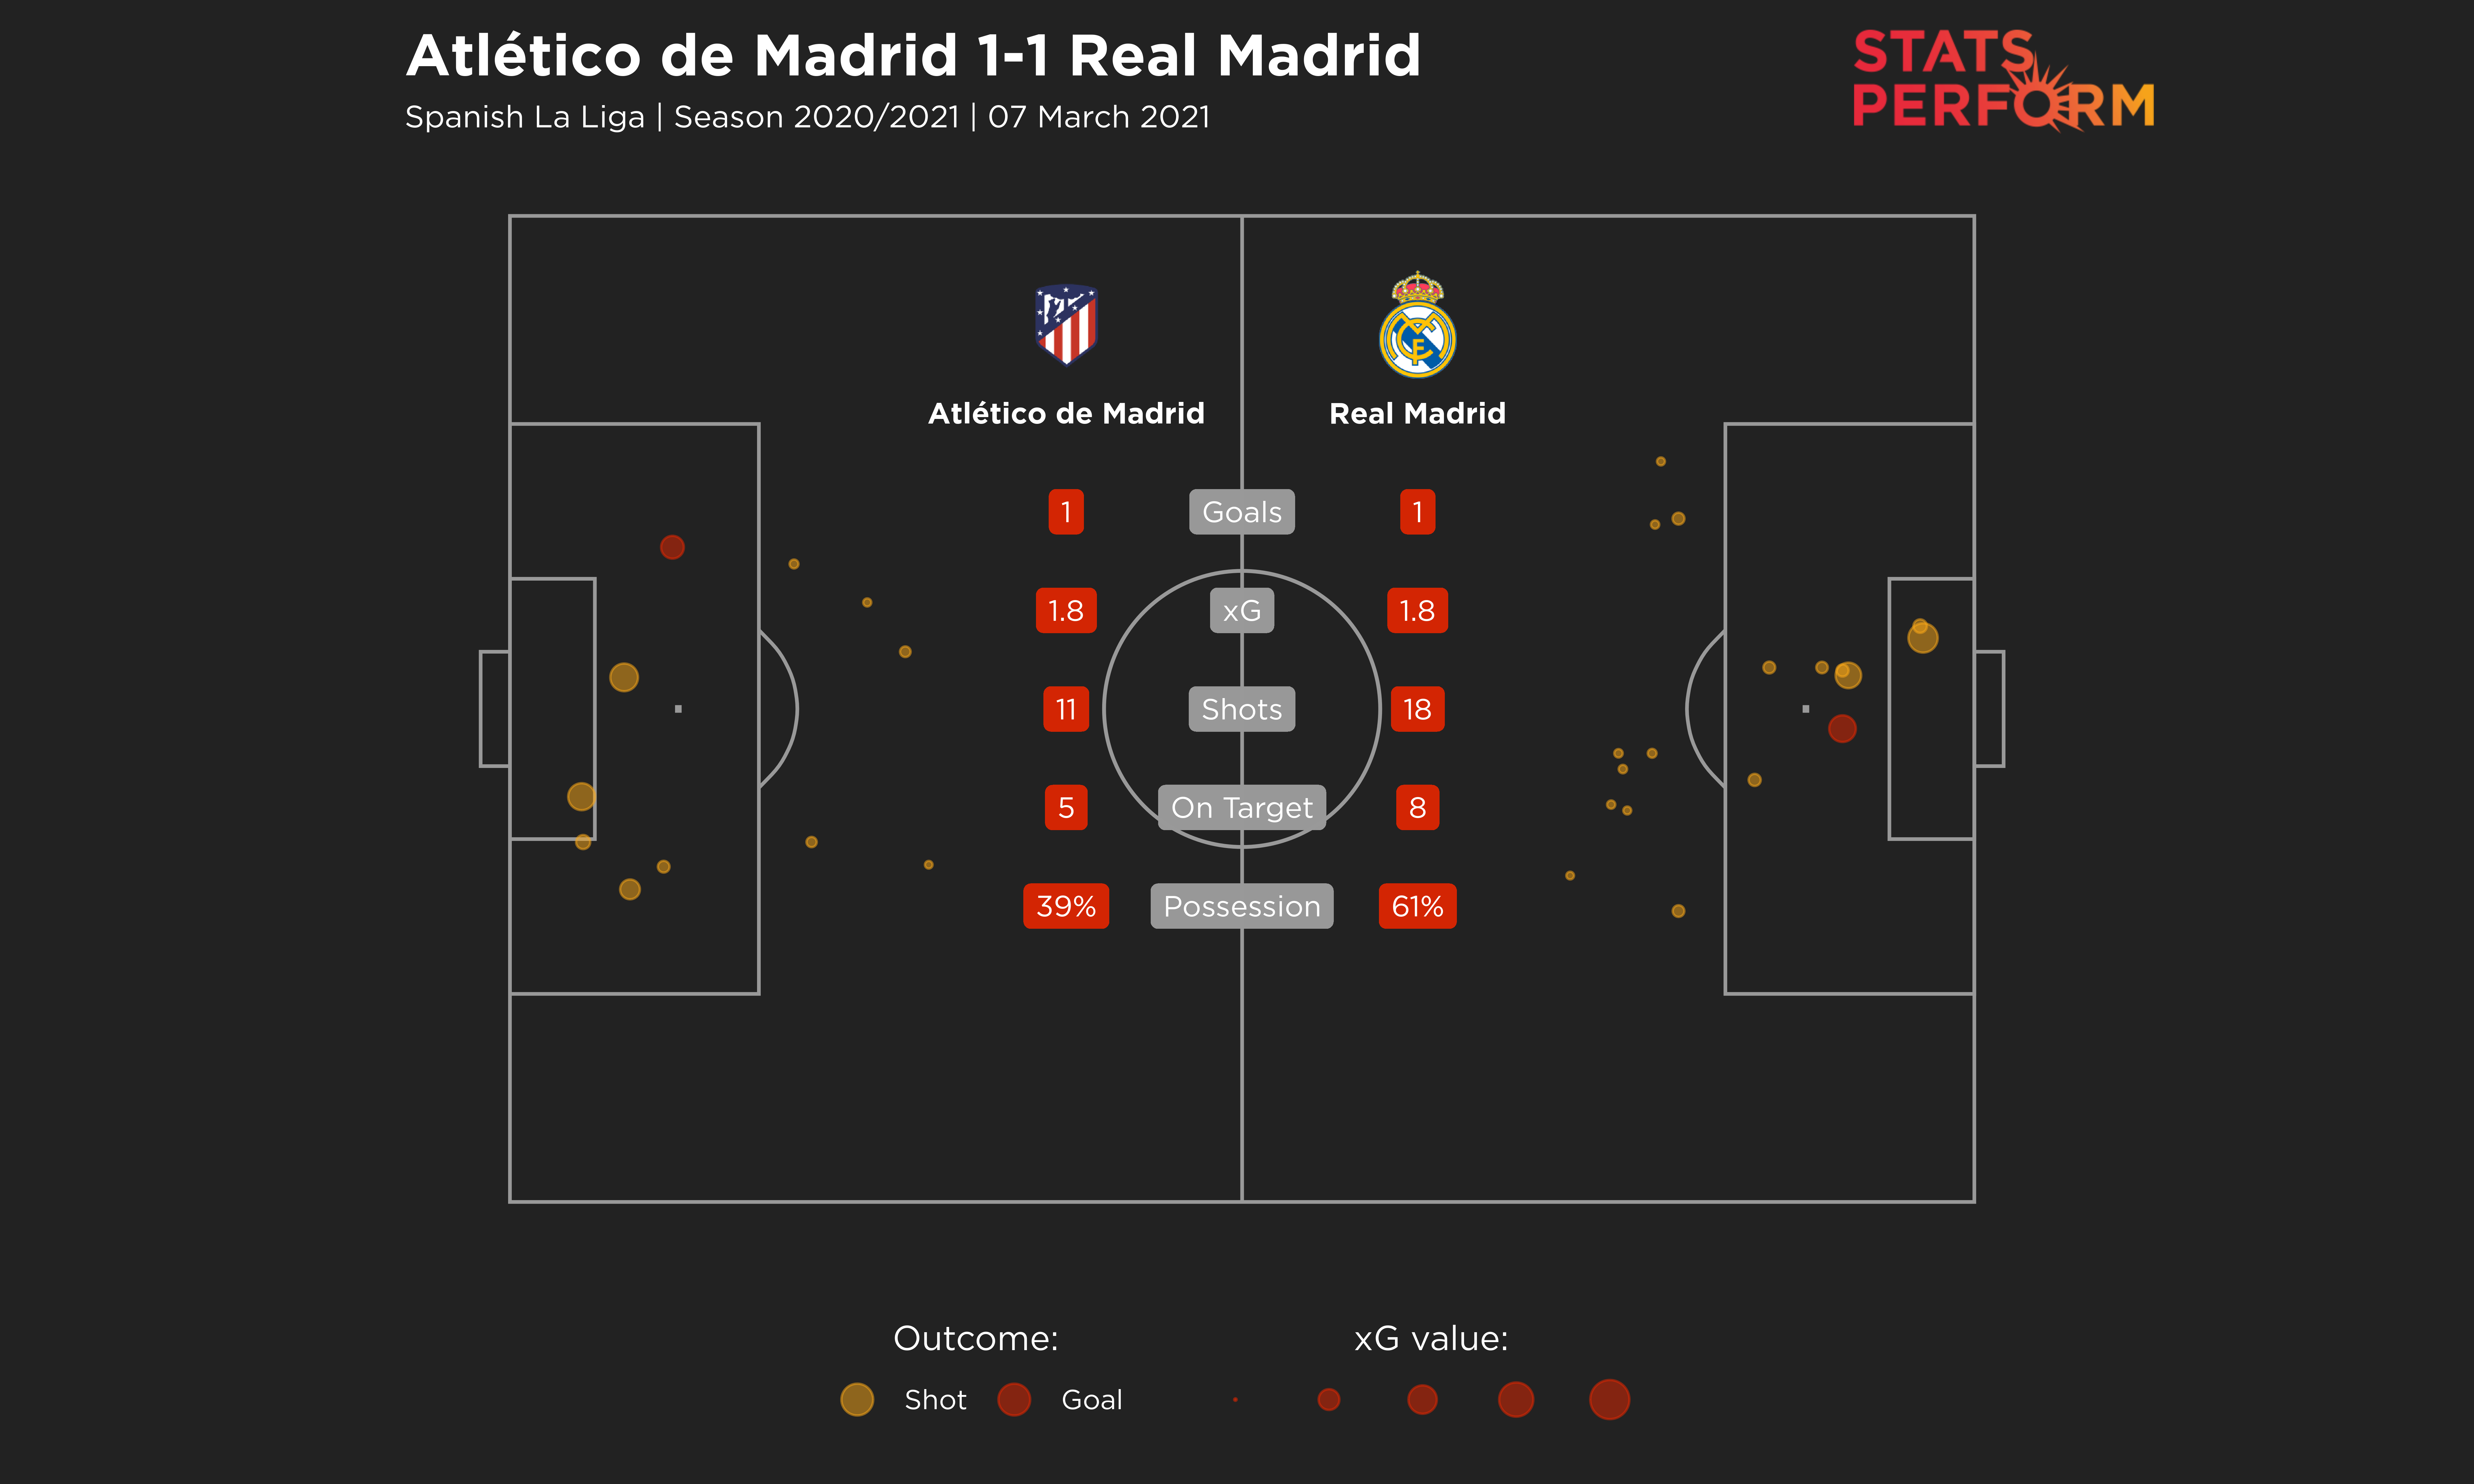 Atletico Madrid v Real Madrid match facts